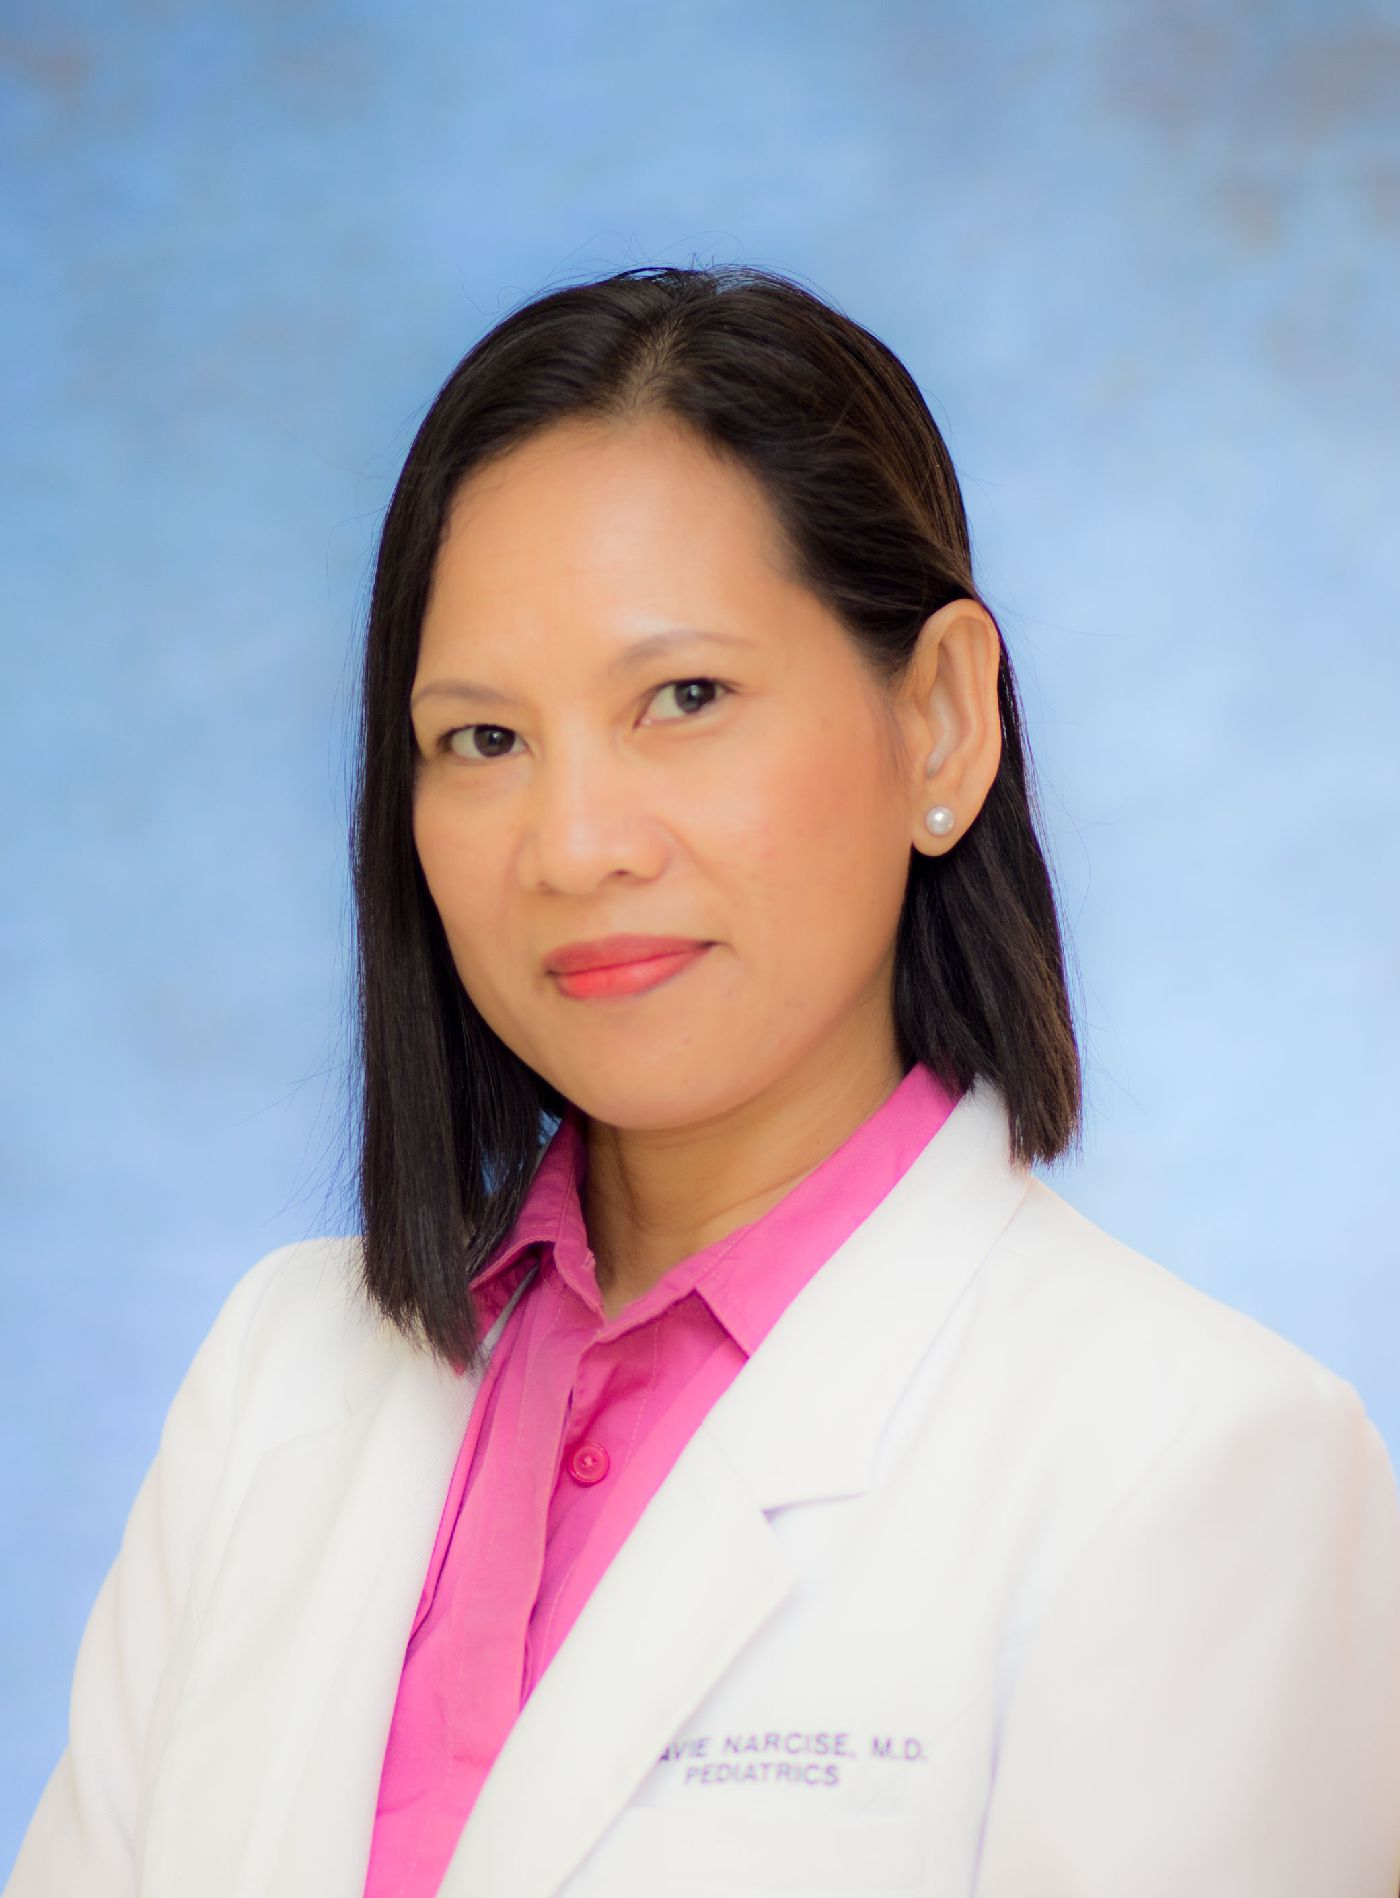 Mavie Narcise, M.D., F.A.A.P.